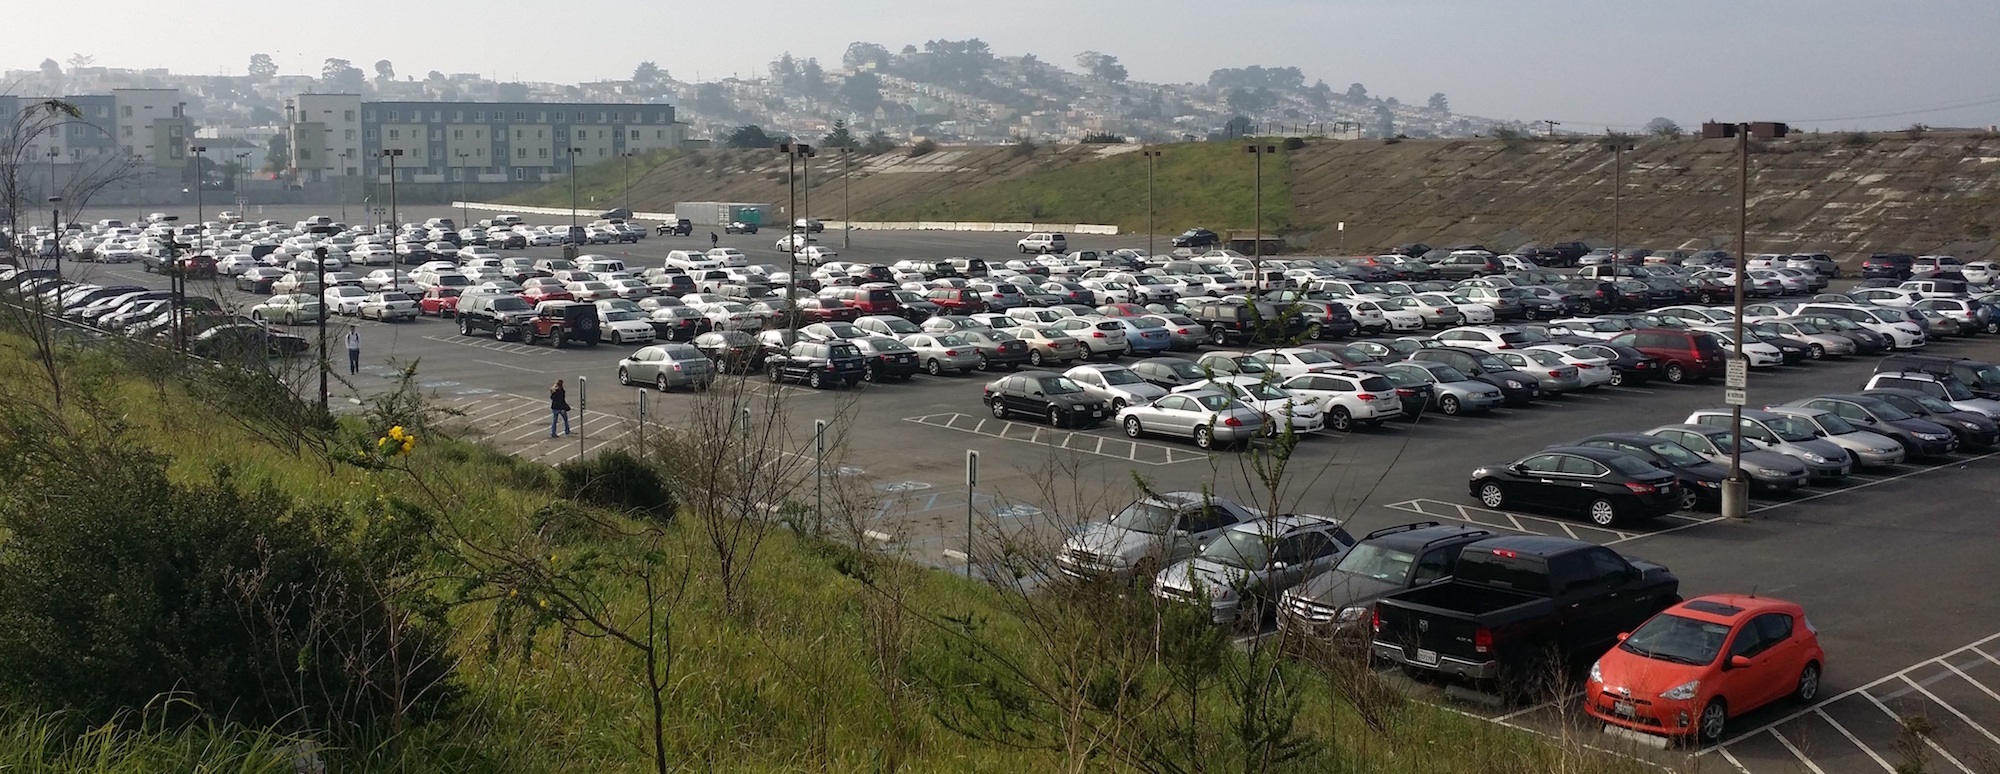 Site of the proposed Balboa Reservoir project, now a CCSF parking lot. © Madeline Mueller